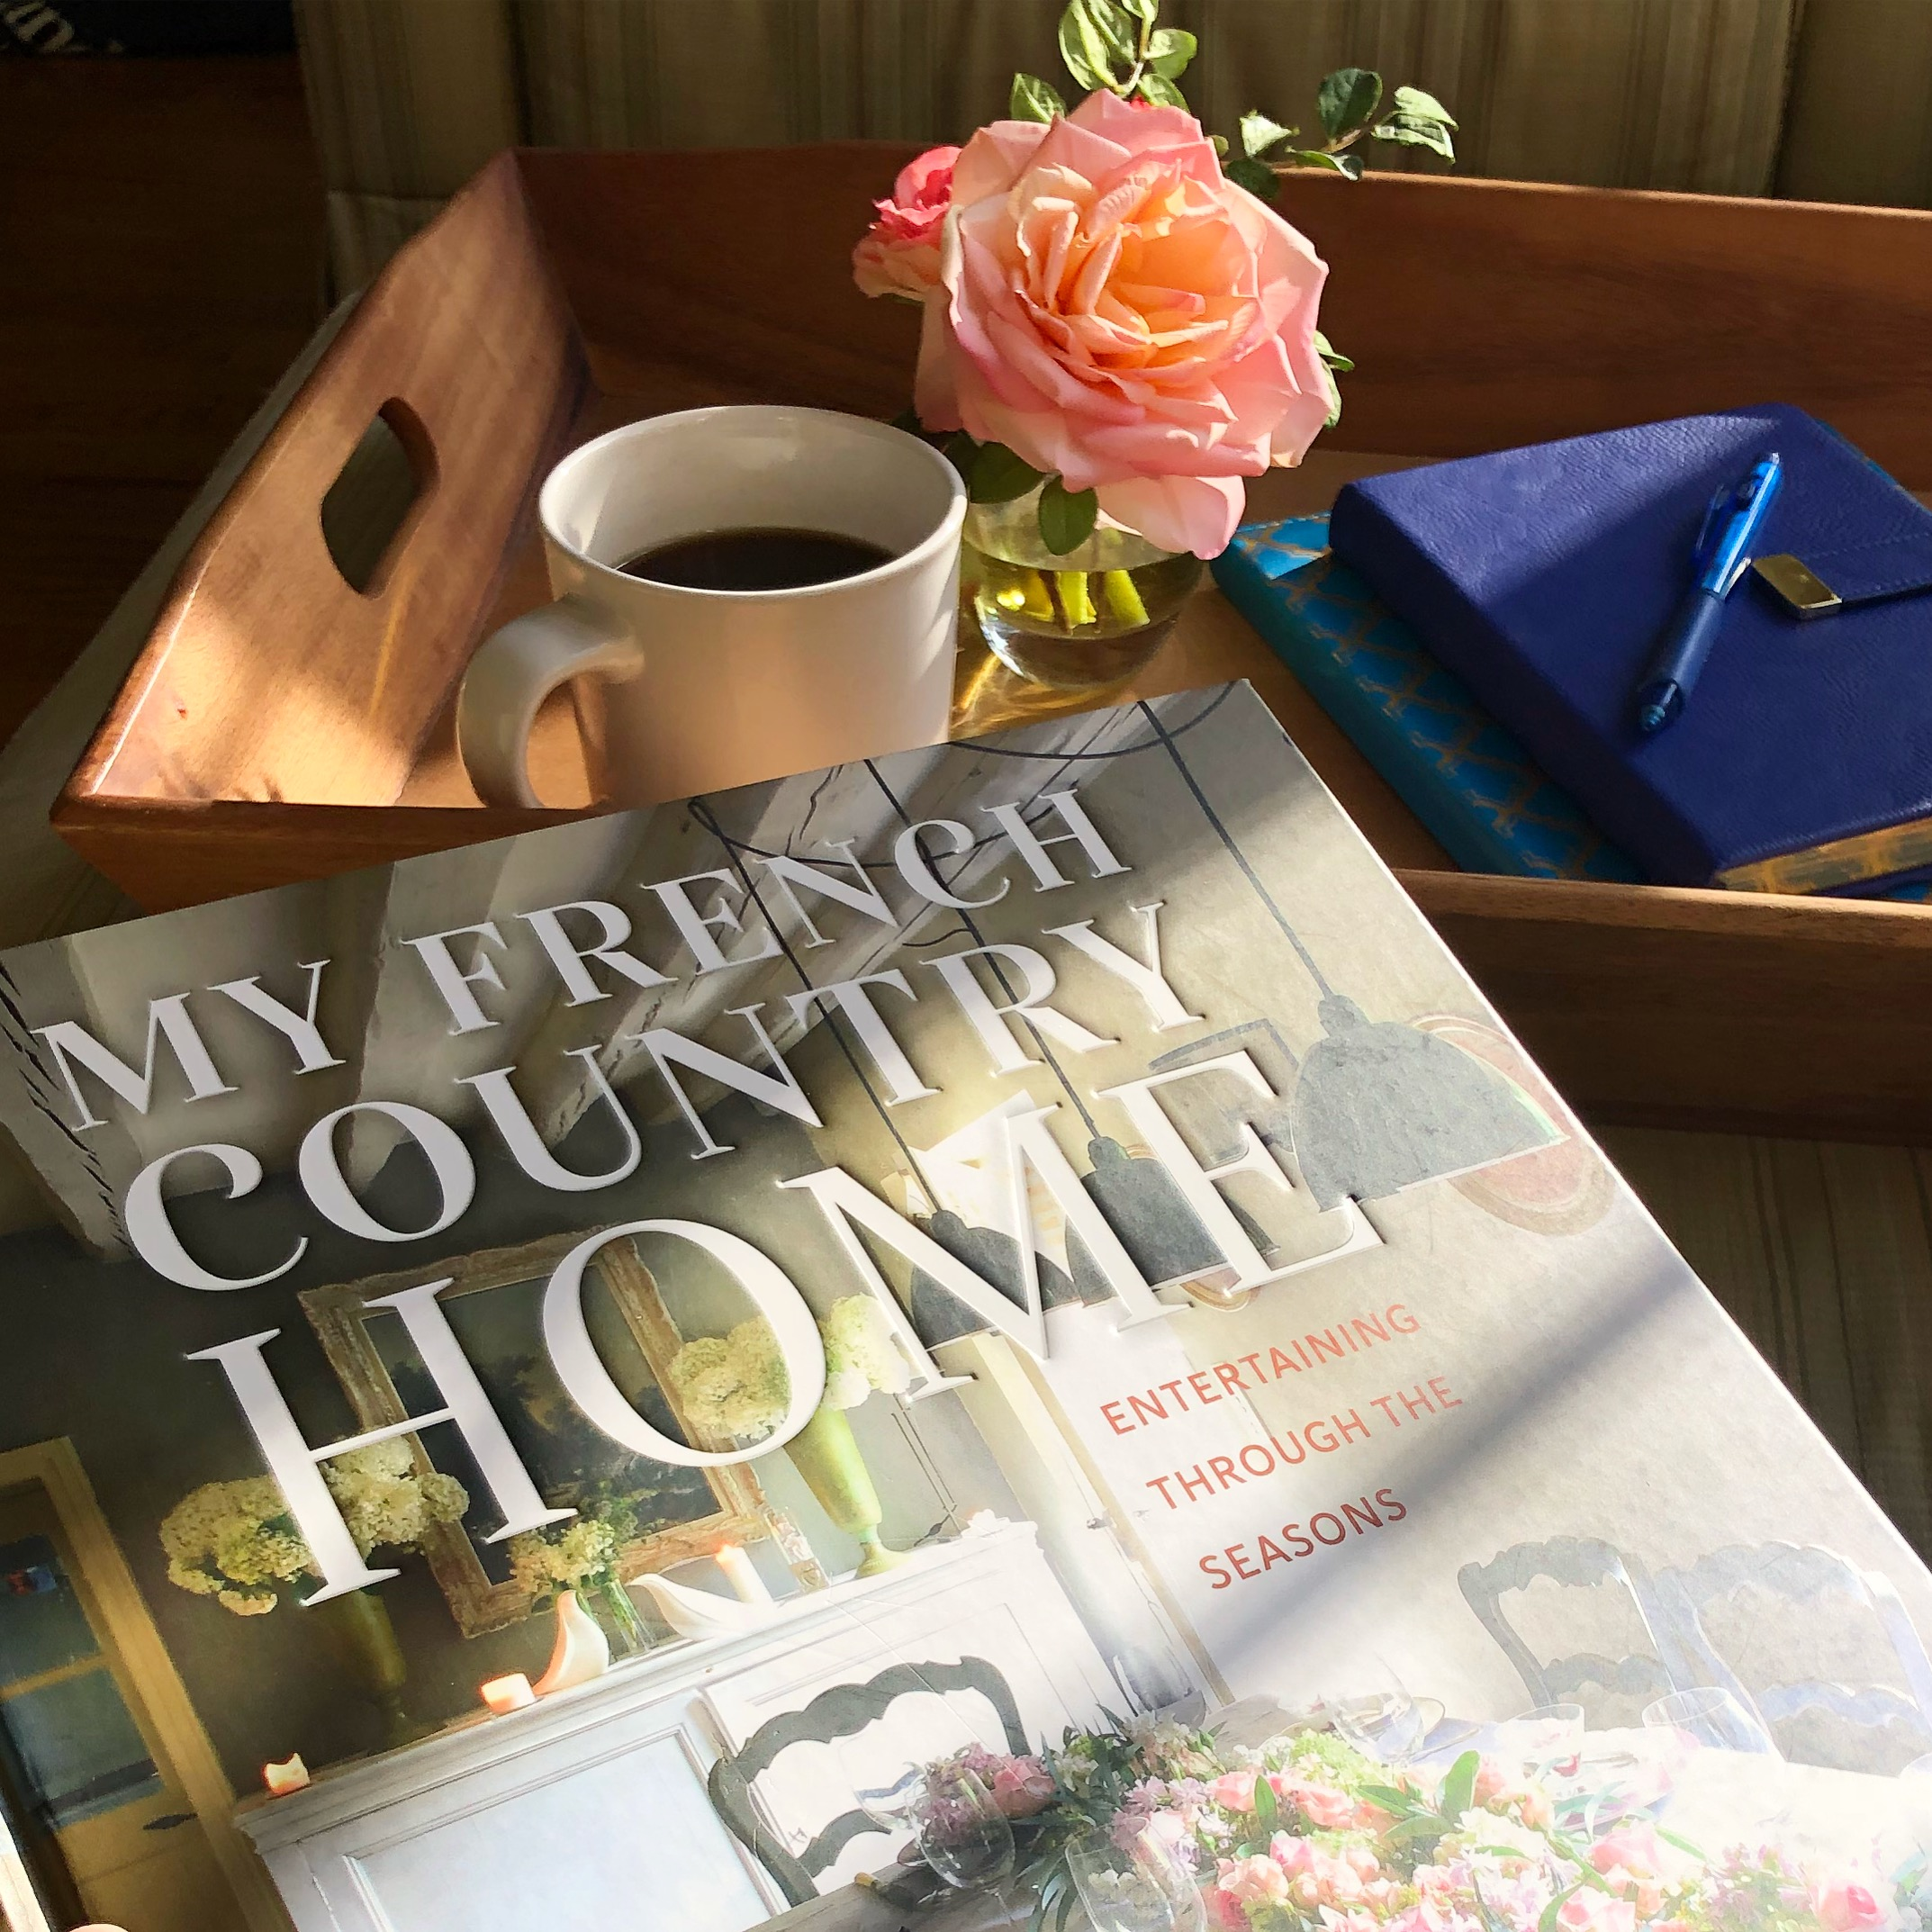 Entertaining book my French Country Home